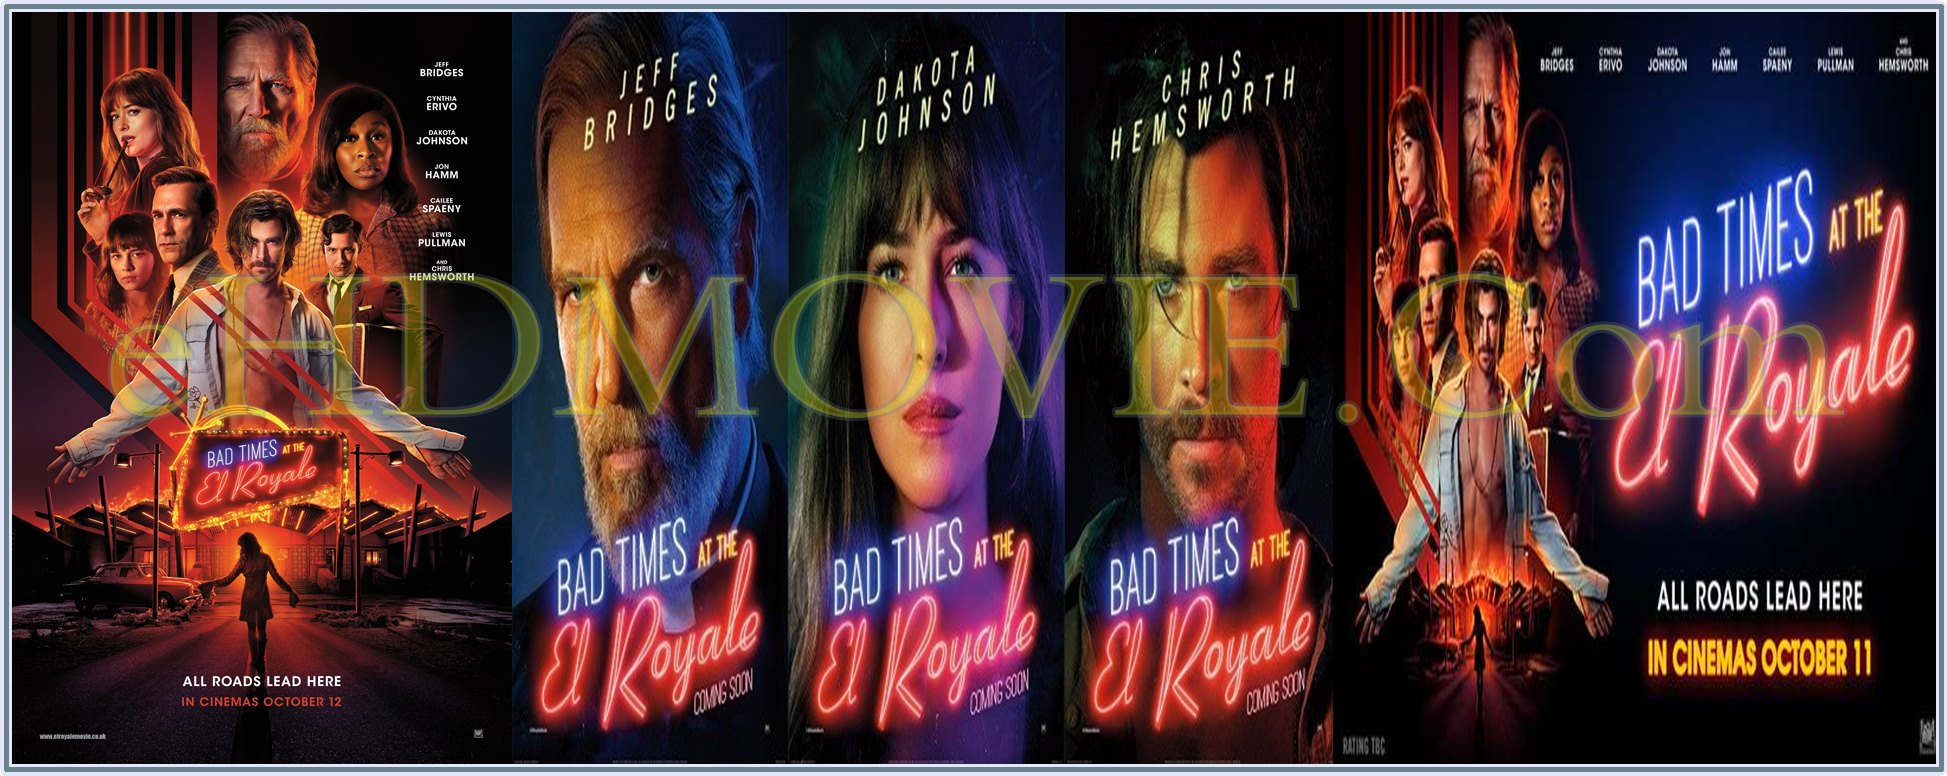 Bad Times at the El Royale 2018 Full Movie English 720p - 480p ORG BRRip 550MB - 700MB - 1GB ESubs Free Download